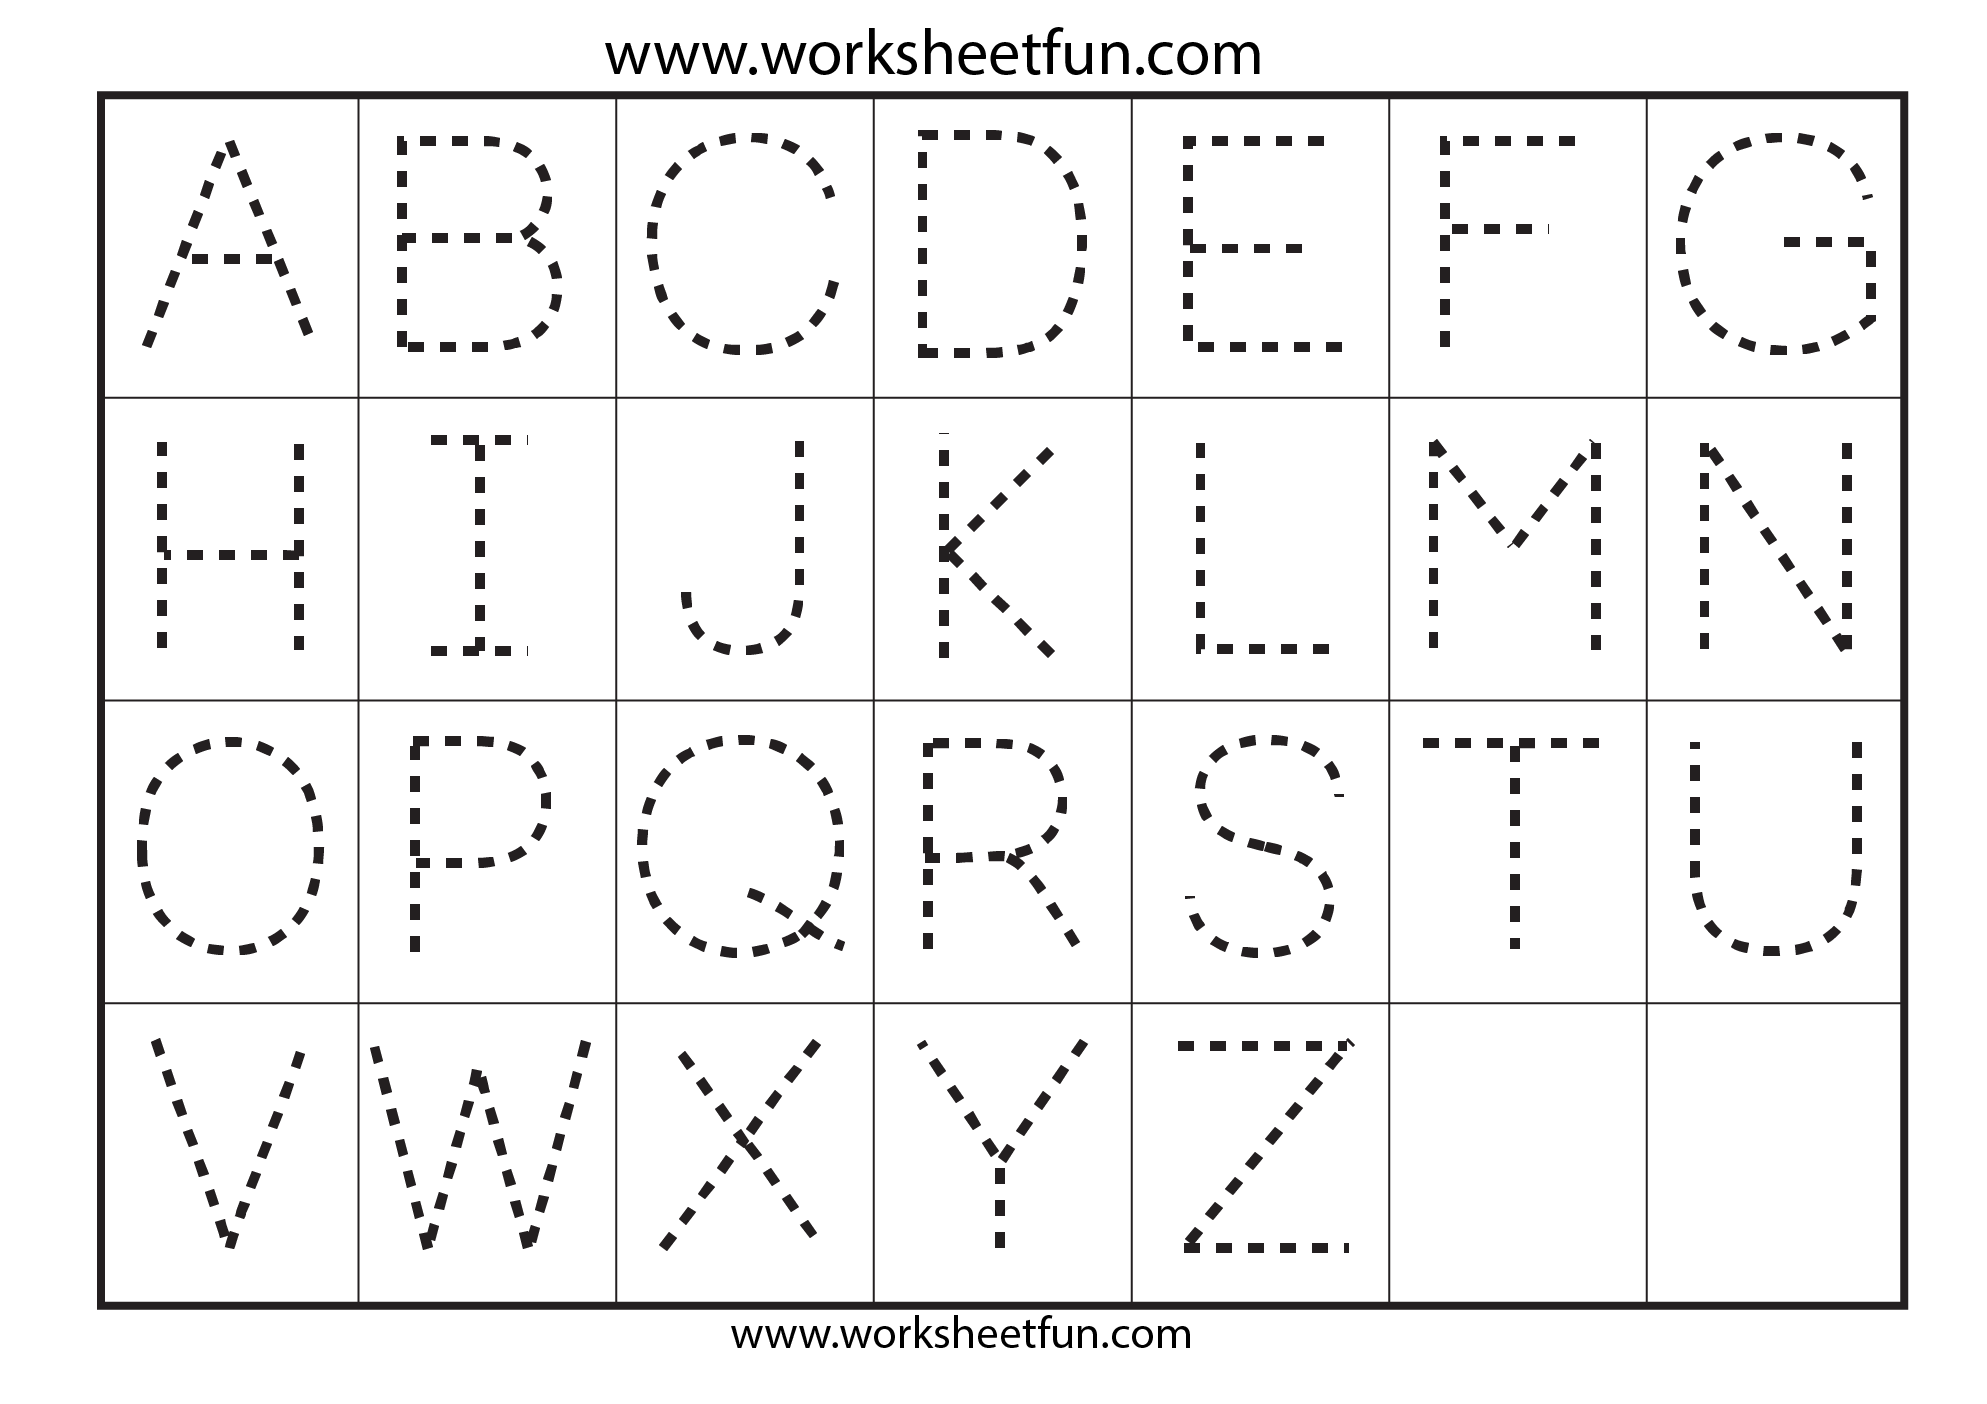 Printables Preschool Alphabet Worksheets A-z printables preschool alphabet worksheets a z safarmediapps pre k intrepidpath printable tracing for sheets